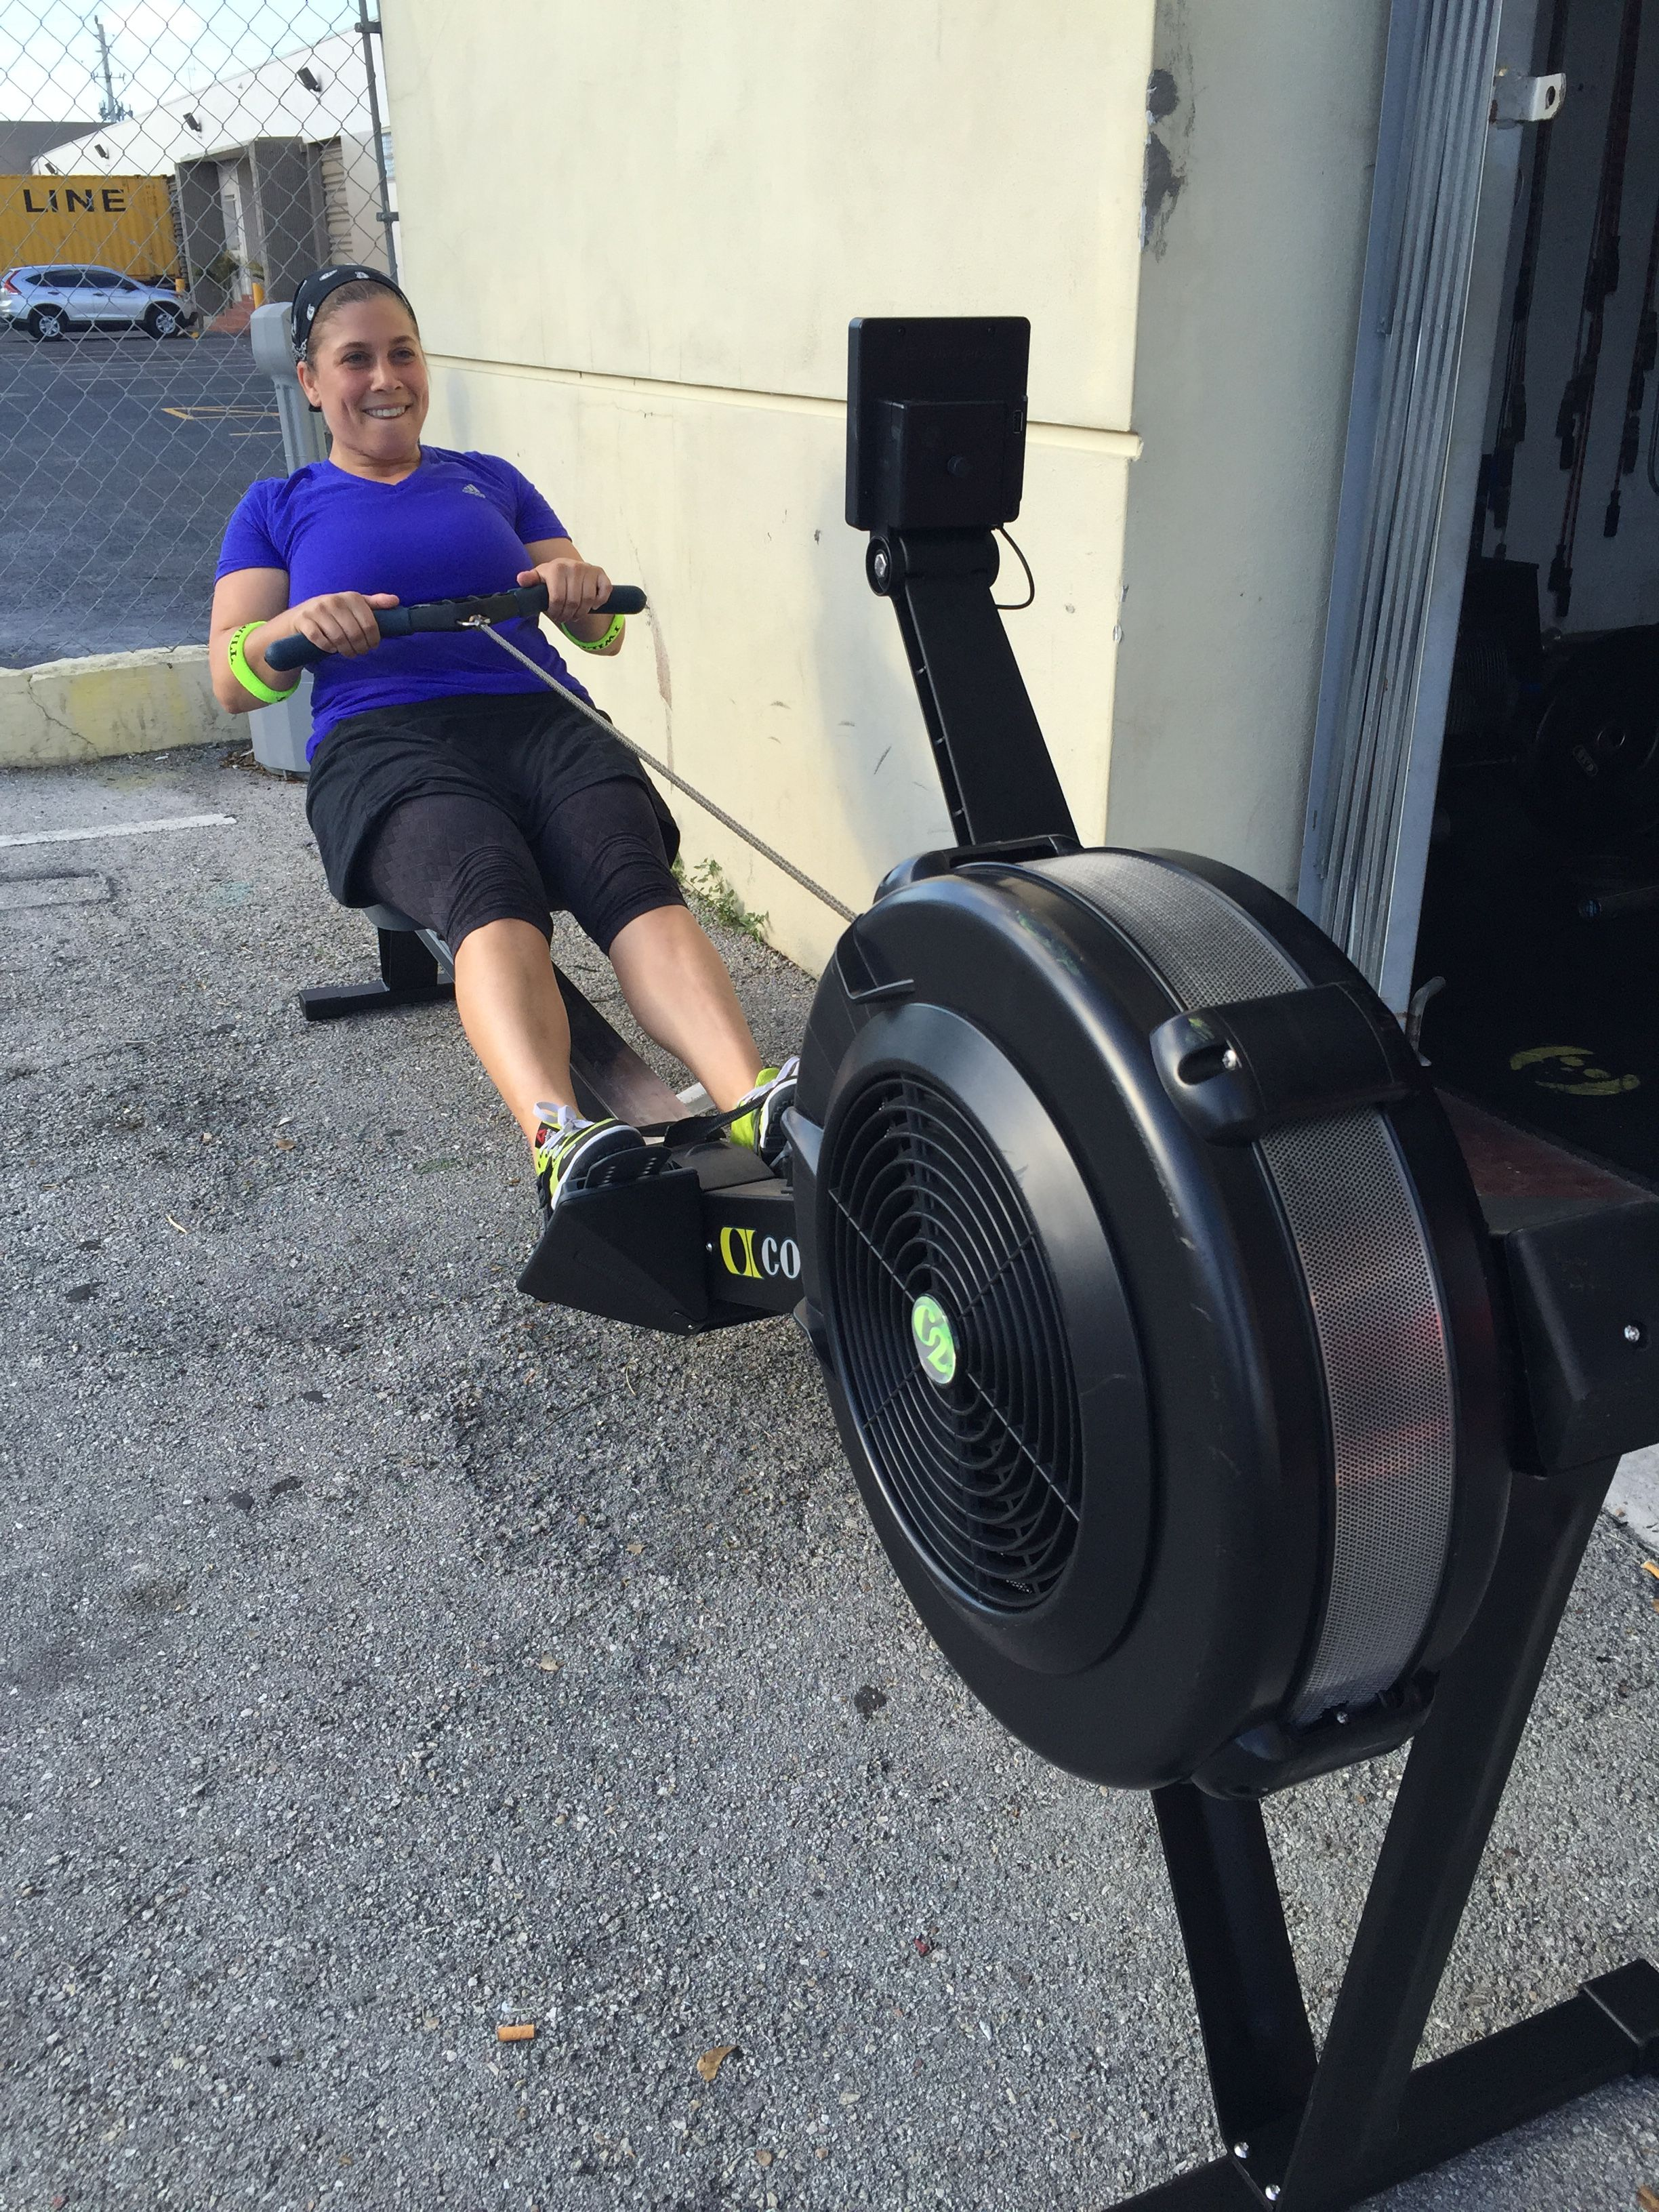 Crossfit rowing workout go eli rowing workout